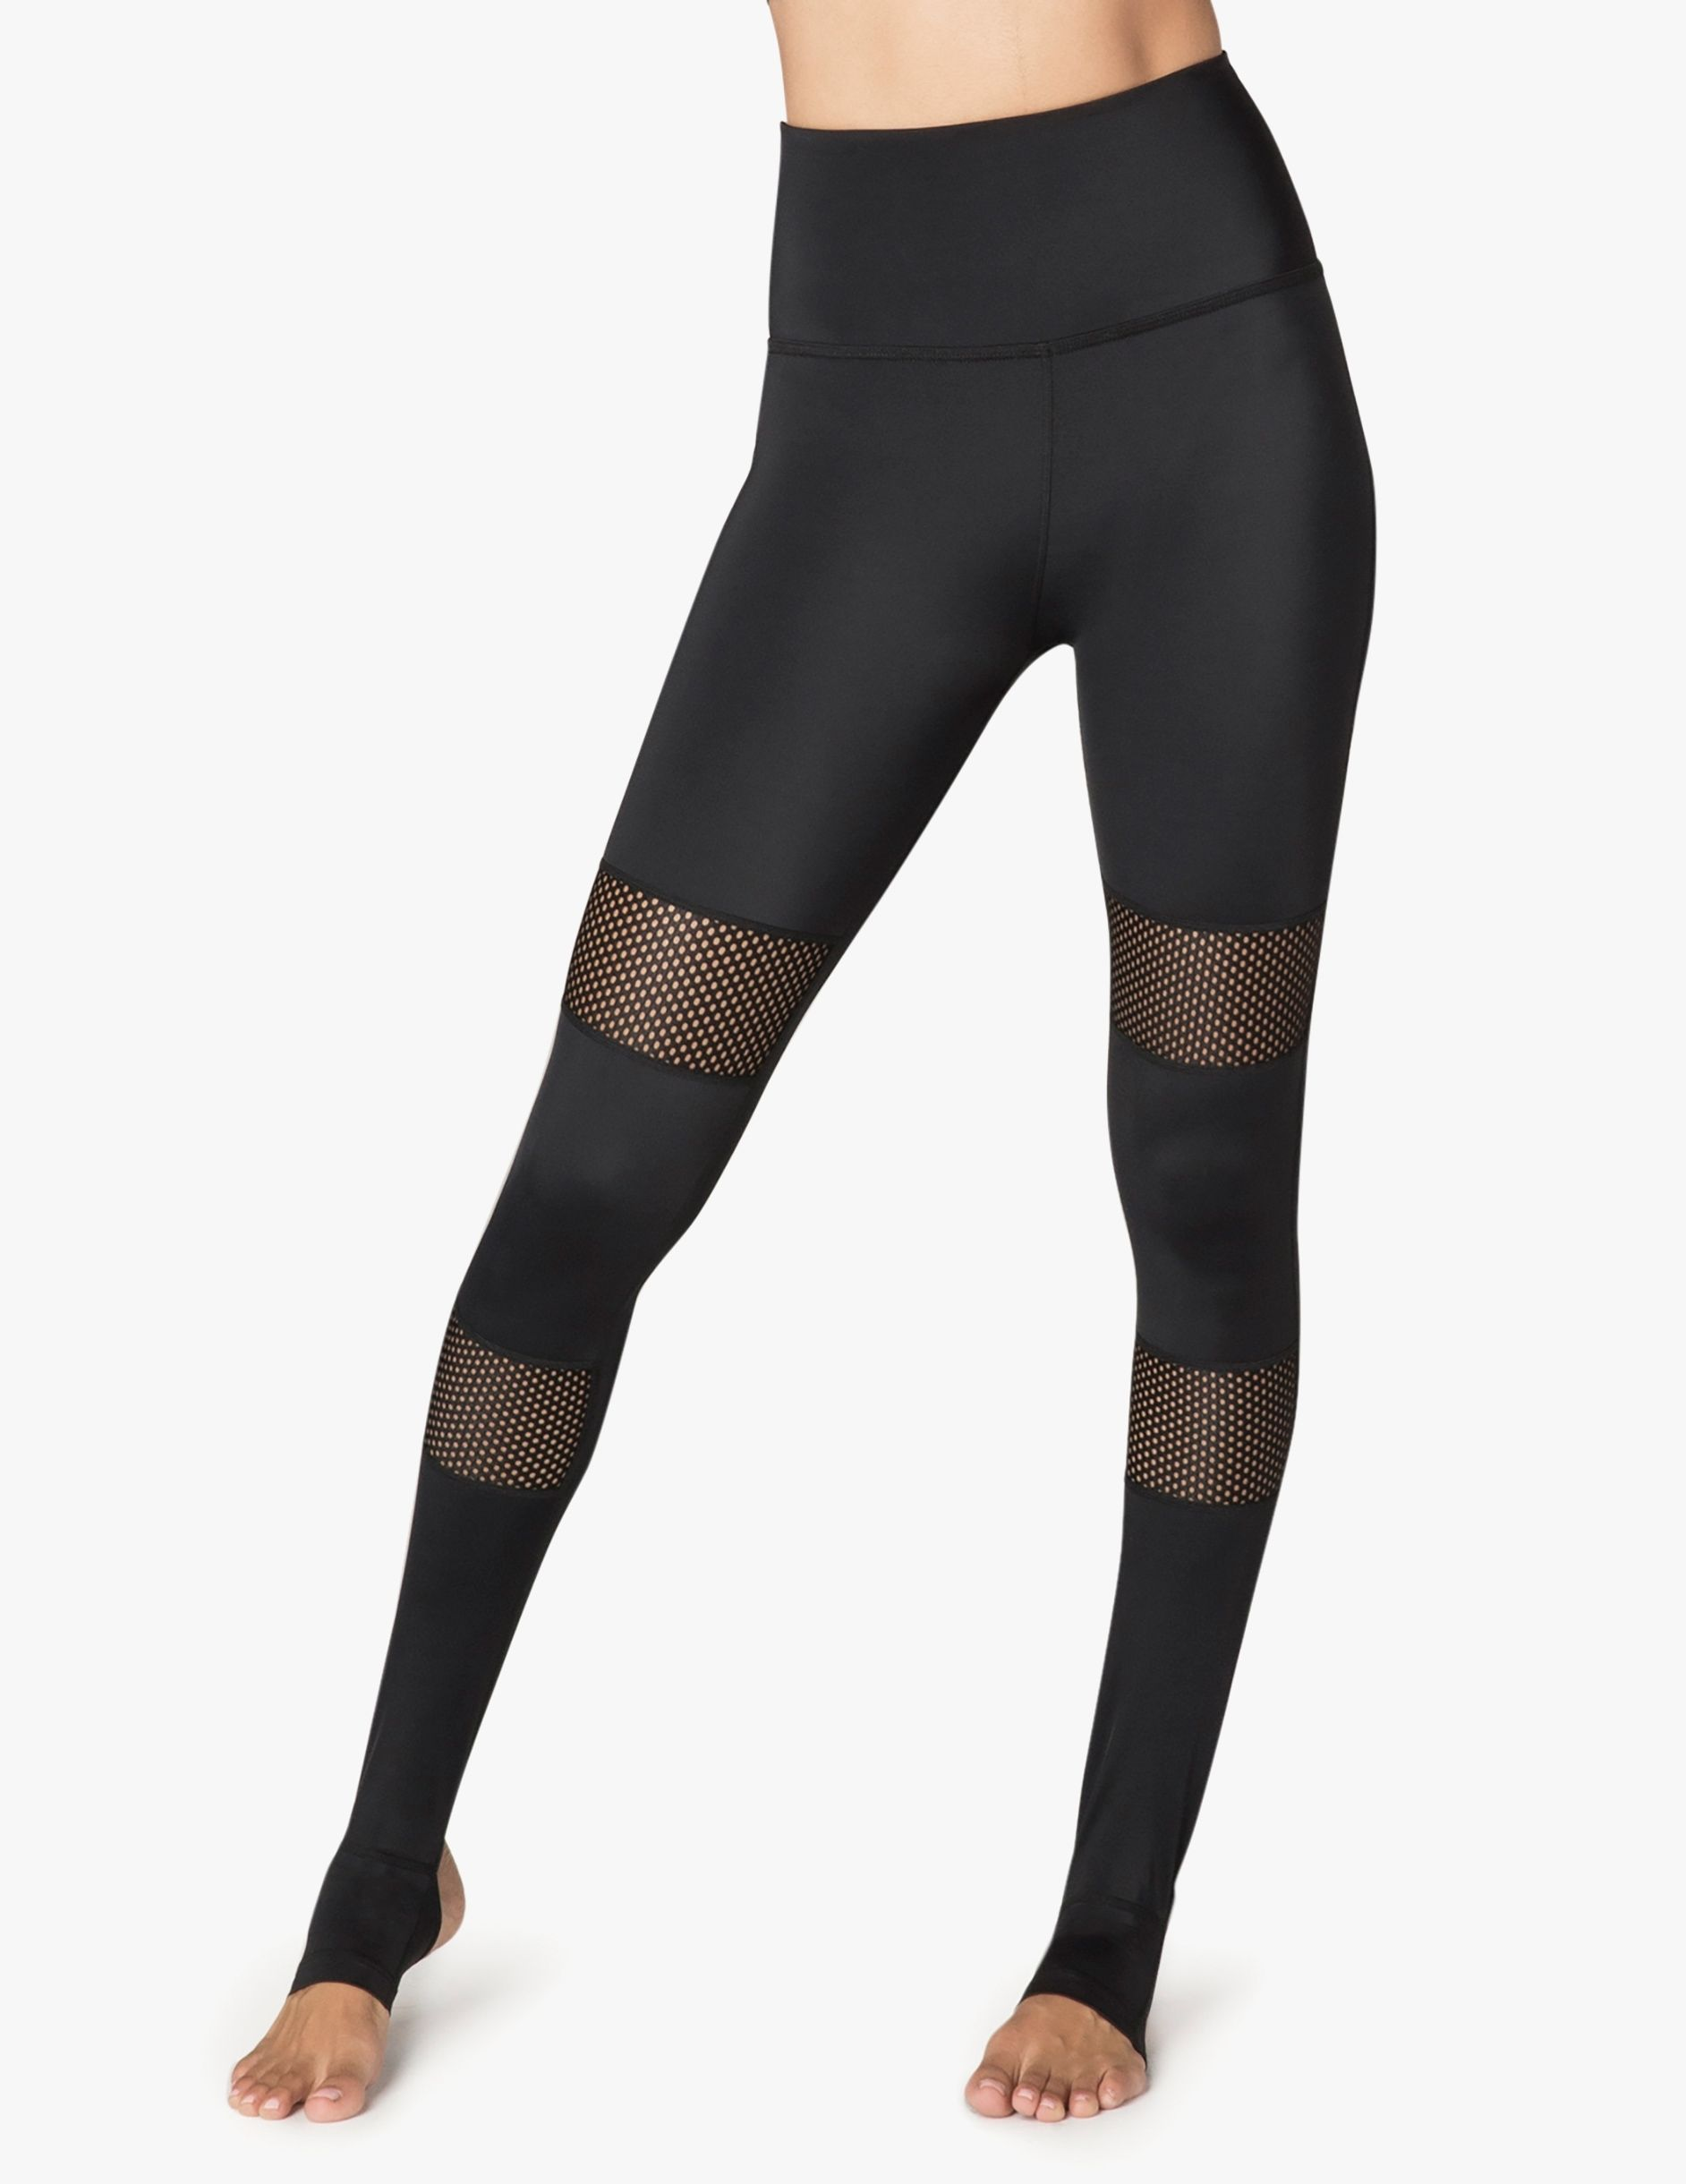 932ddbf3076bf Compression Blocked Out High Waisted Stirrup Legging | Olive Wants ...